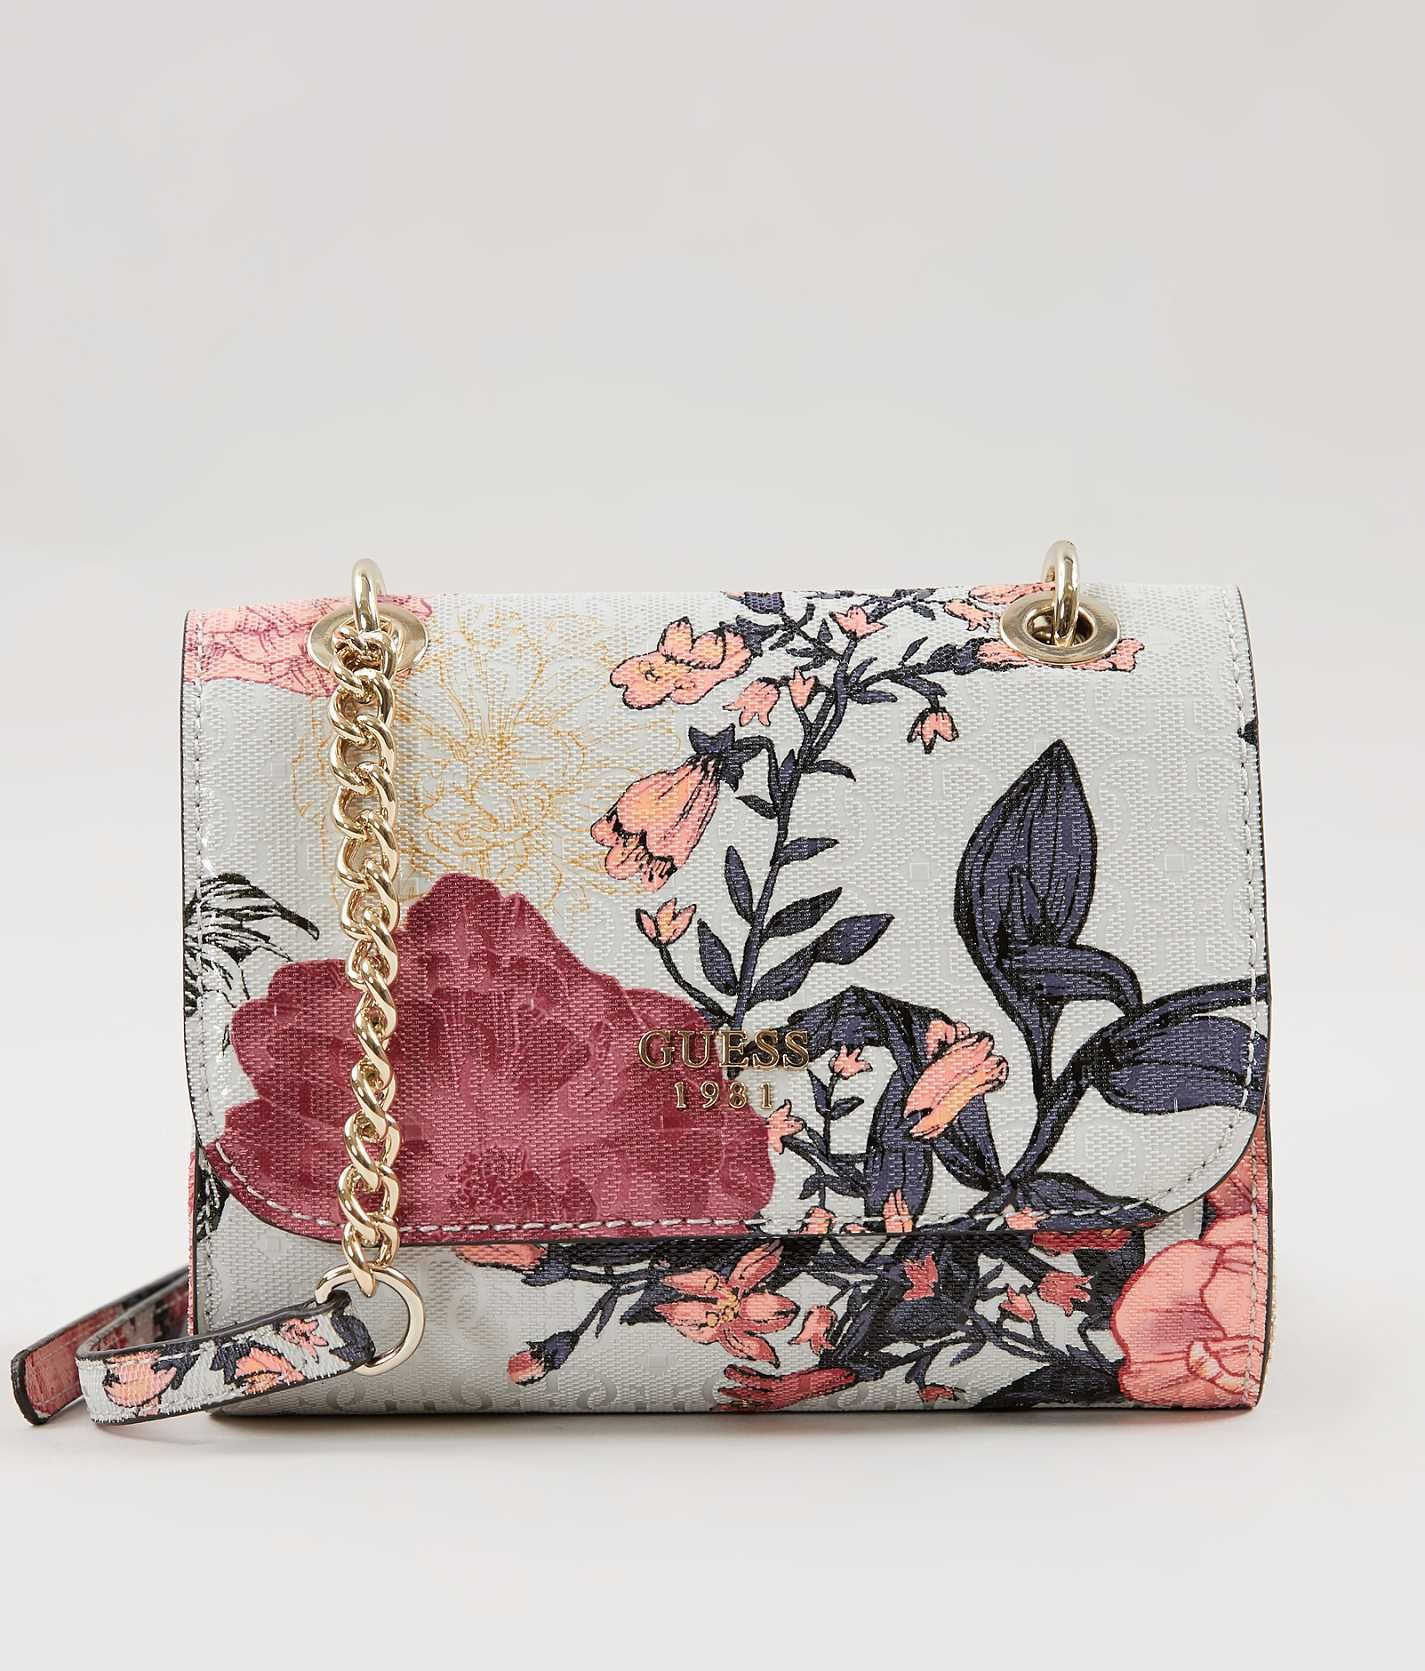 6c4d2e1485 Guess Seraphina Purse - Women s Accessories in Grey Floral